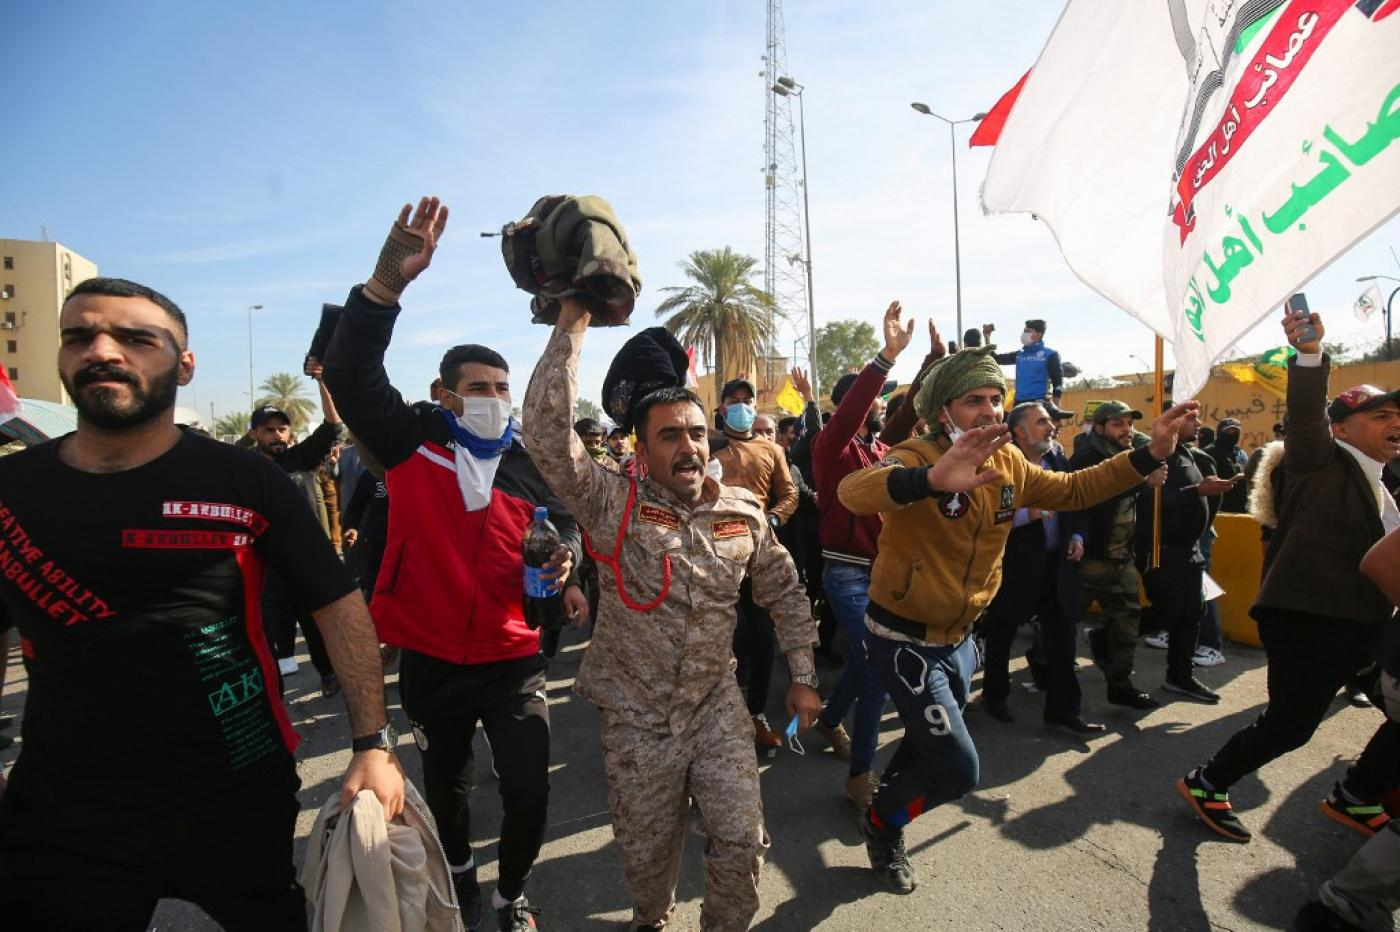 The Iran-backed Hashd al-Shaabi protest outside the US embassy in Baghdad on 1 January 2020